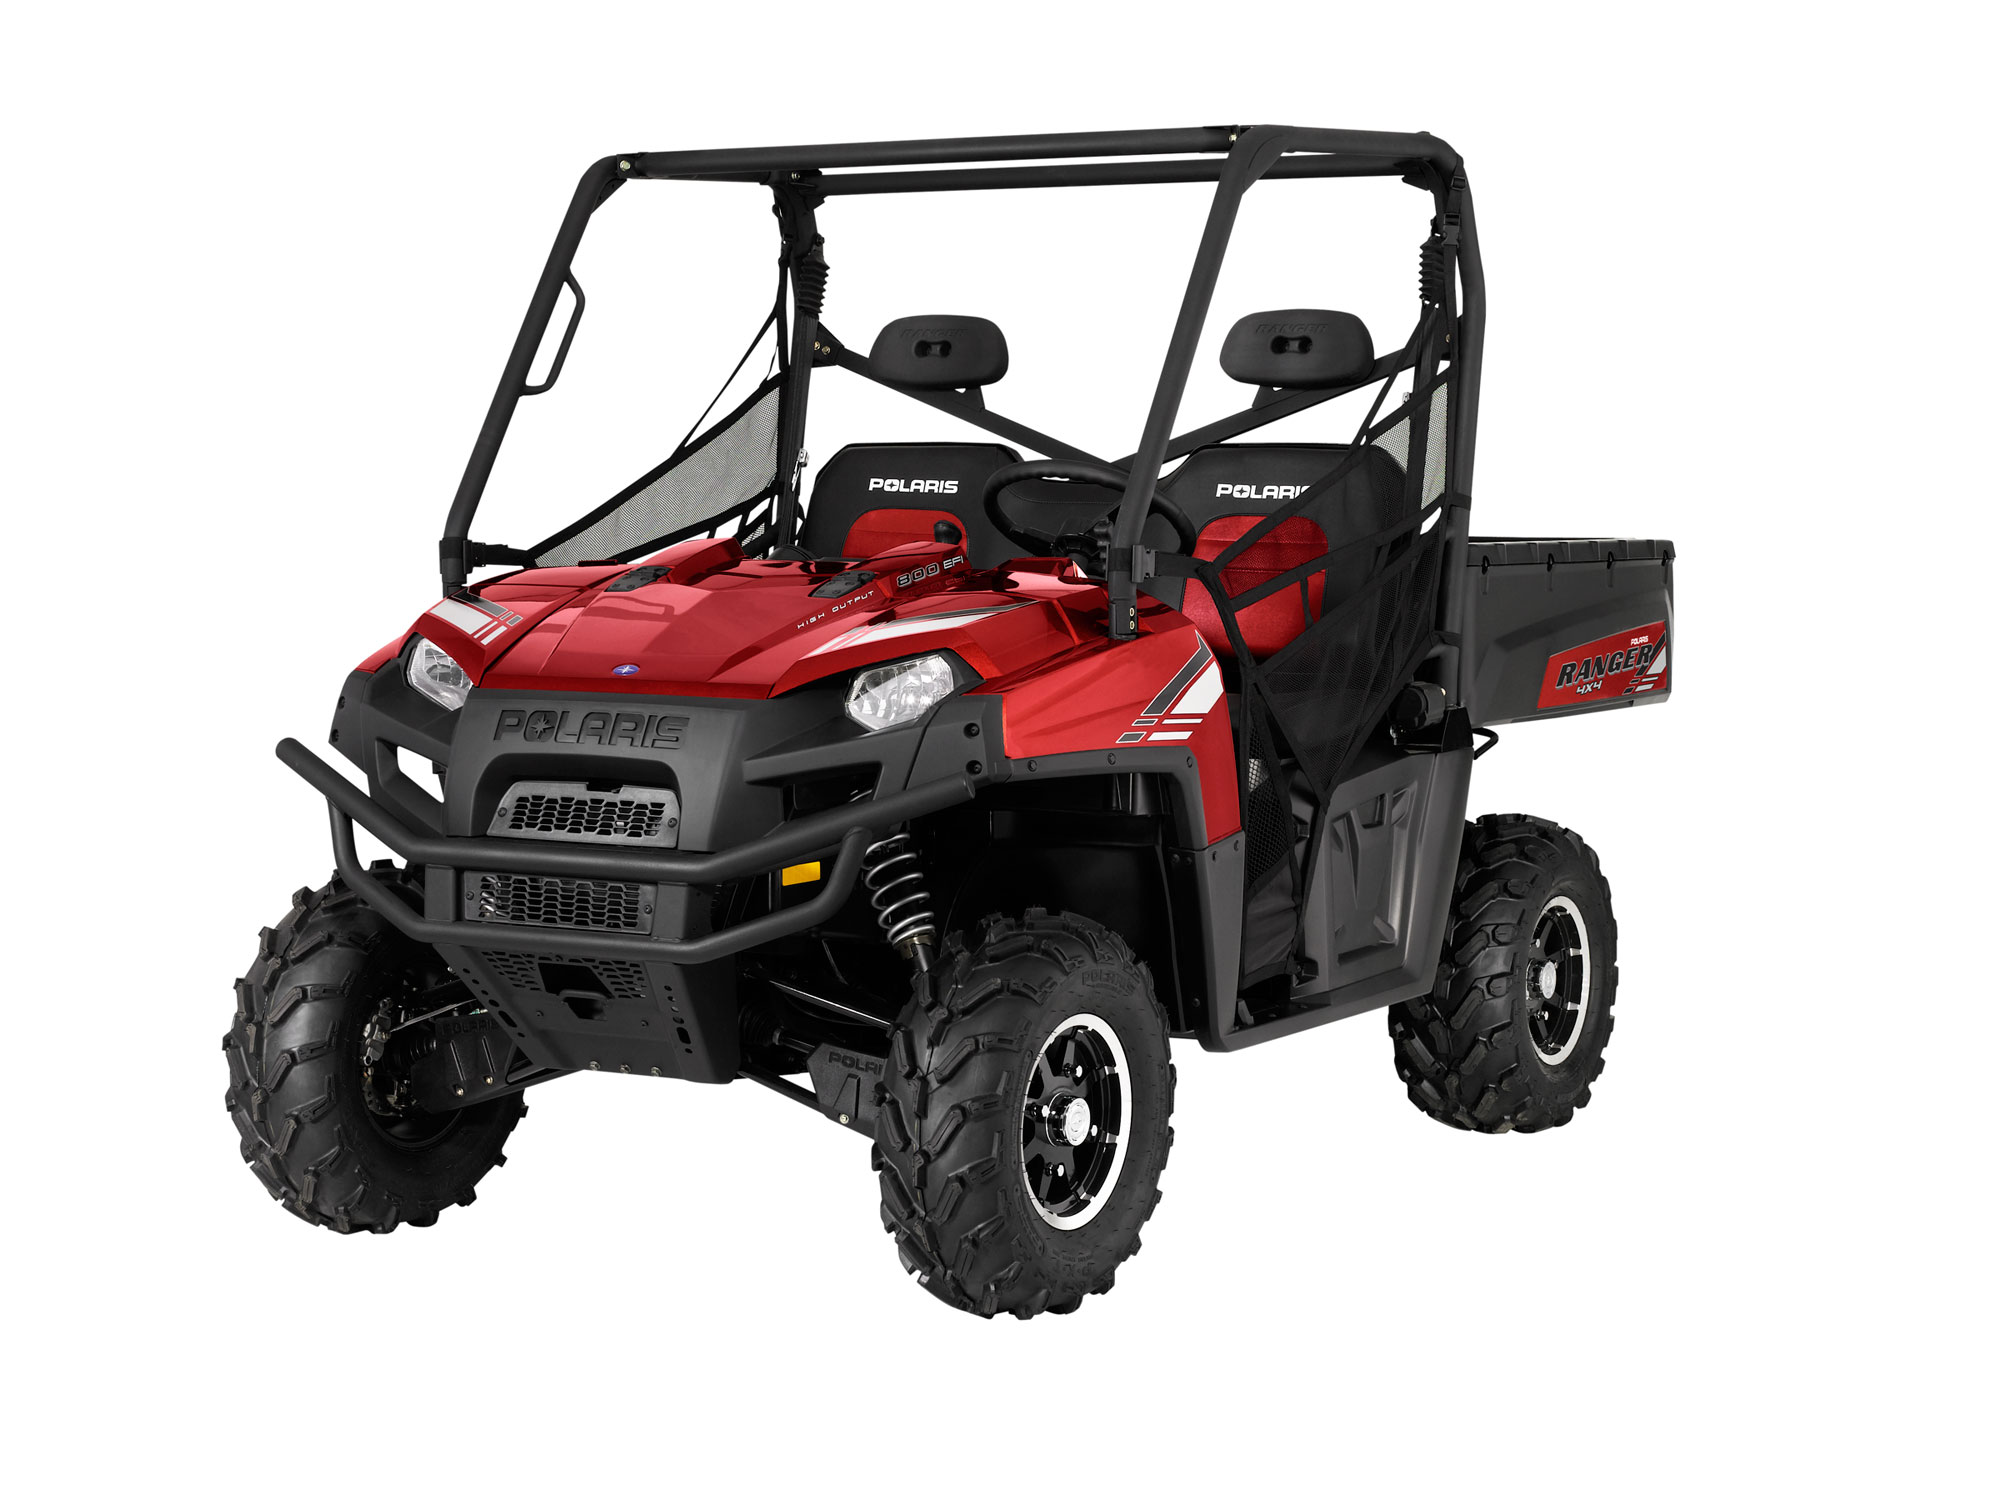 2013 polaris ranger 800ho efi review. Black Bedroom Furniture Sets. Home Design Ideas